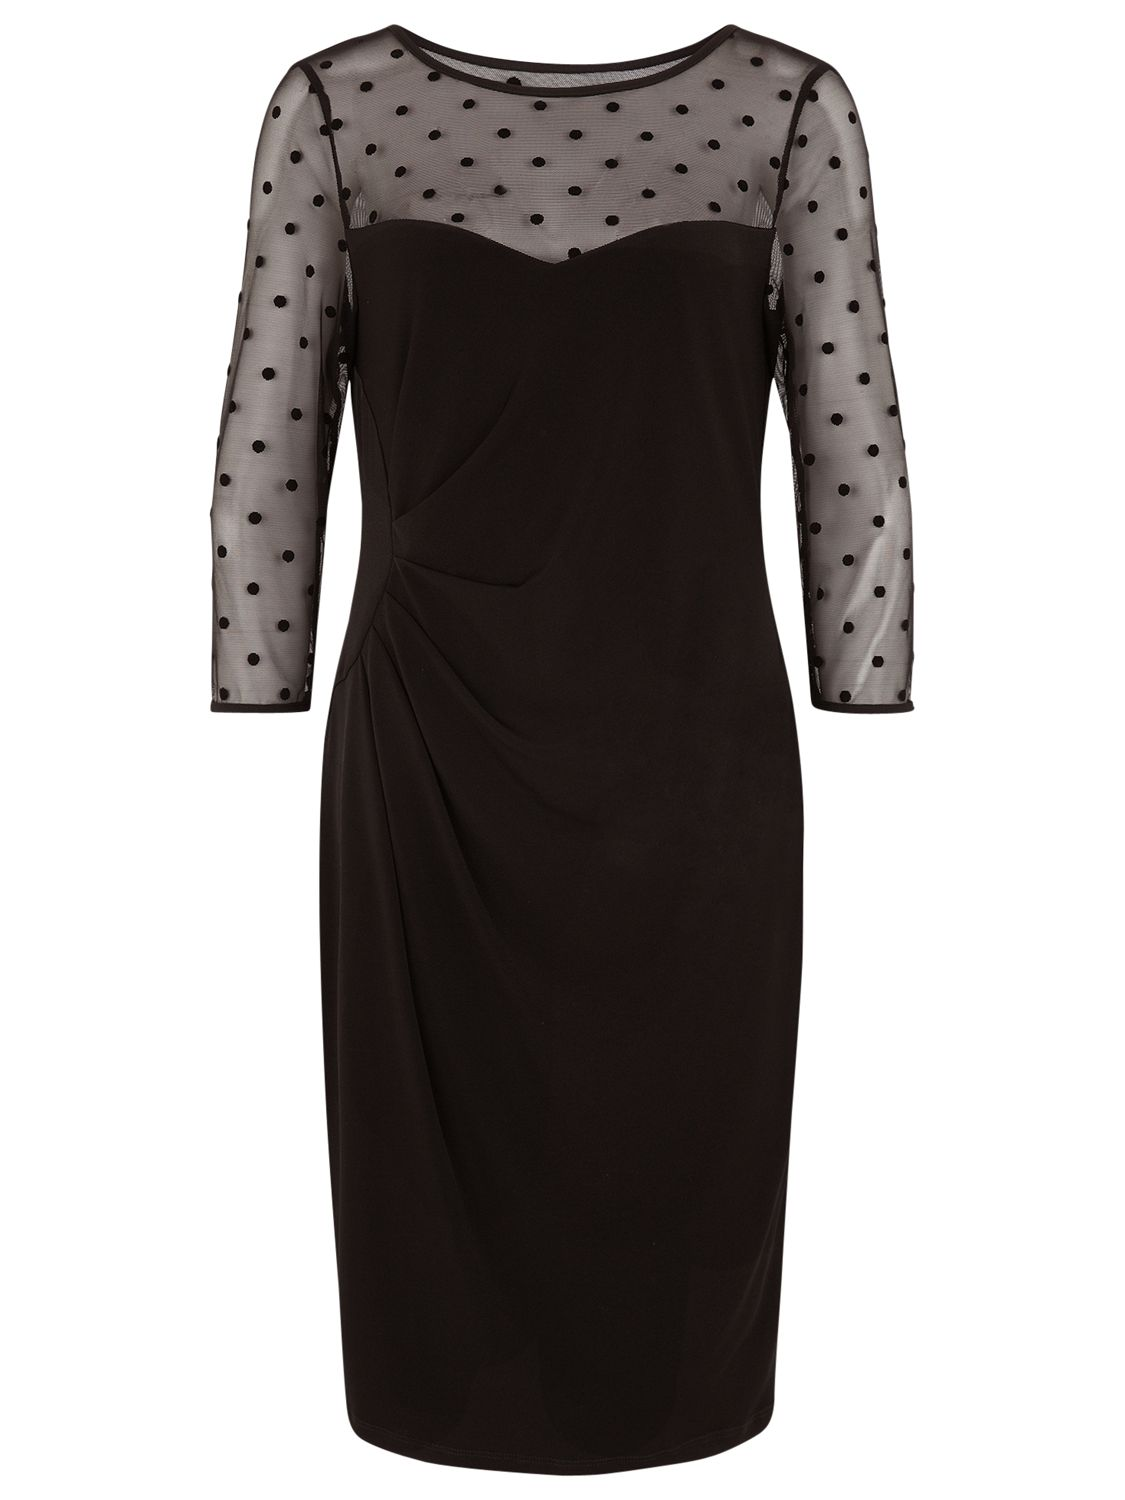 planet flocked spot jersey dress black, planet, flocked, spot, jersey, dress, black, 8|10|16|12|14, clearance, womenswear offers, womens dresses offers, new years party offers, women, plus size, inactive womenswear, new reductions, womens dresses, special offers, edition magazine, little black dress, 1741393